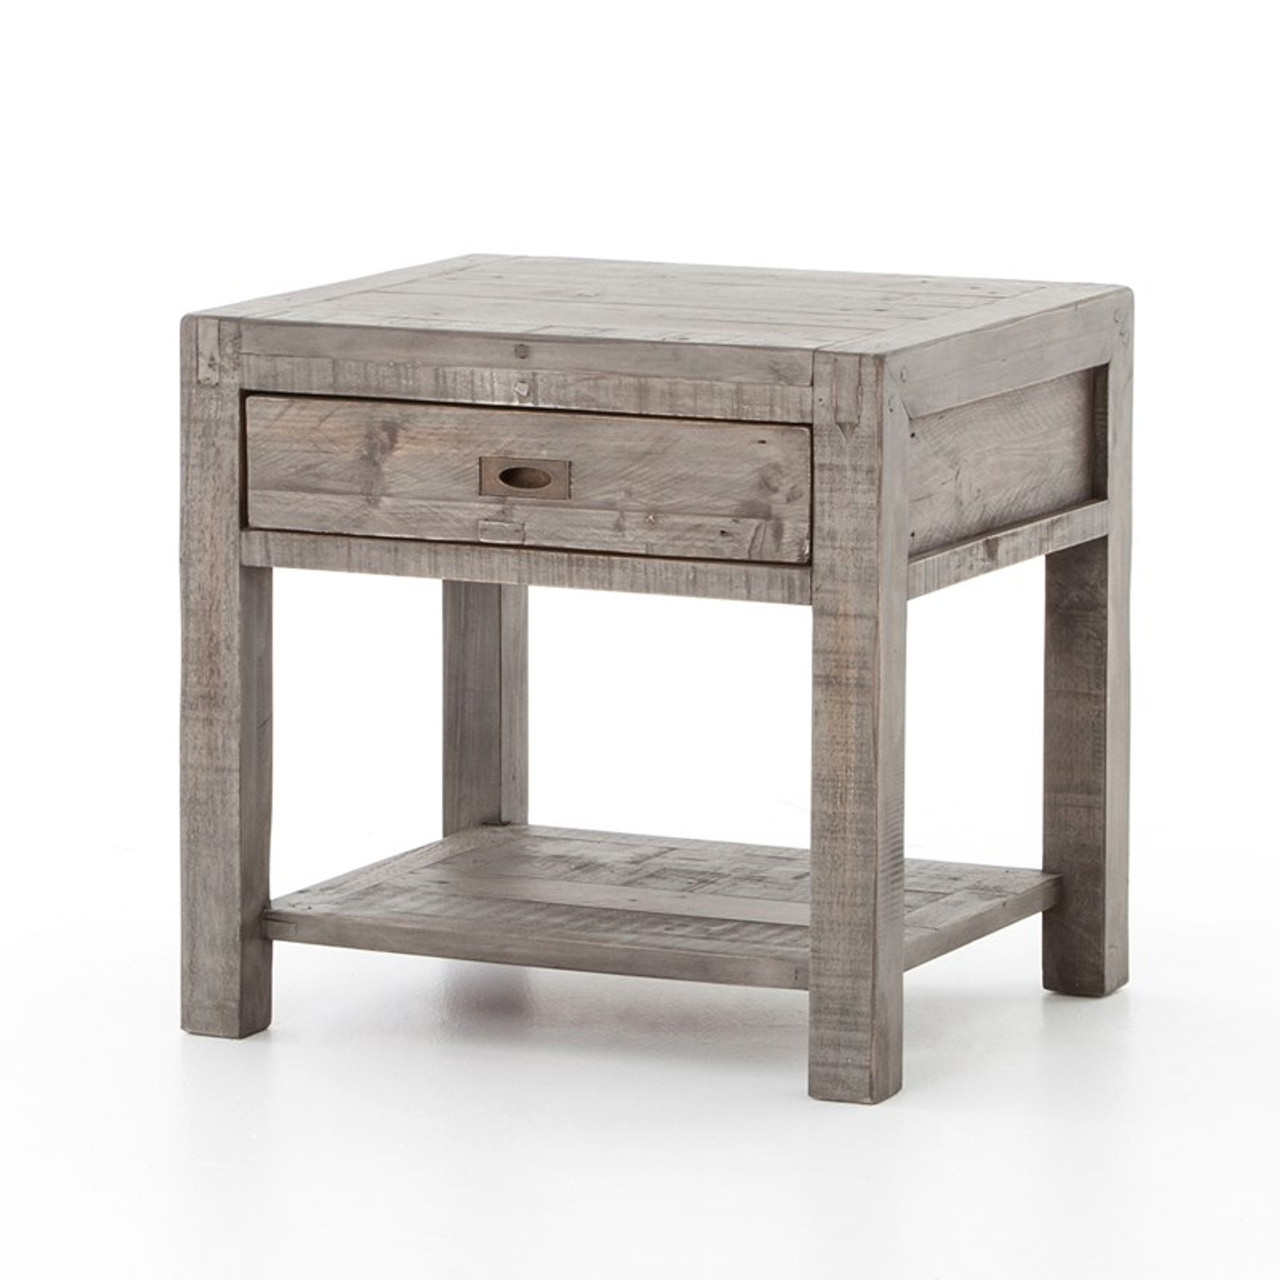 Charmant Parsons Reclaimed Wood 1 Drawer End Table   Grey